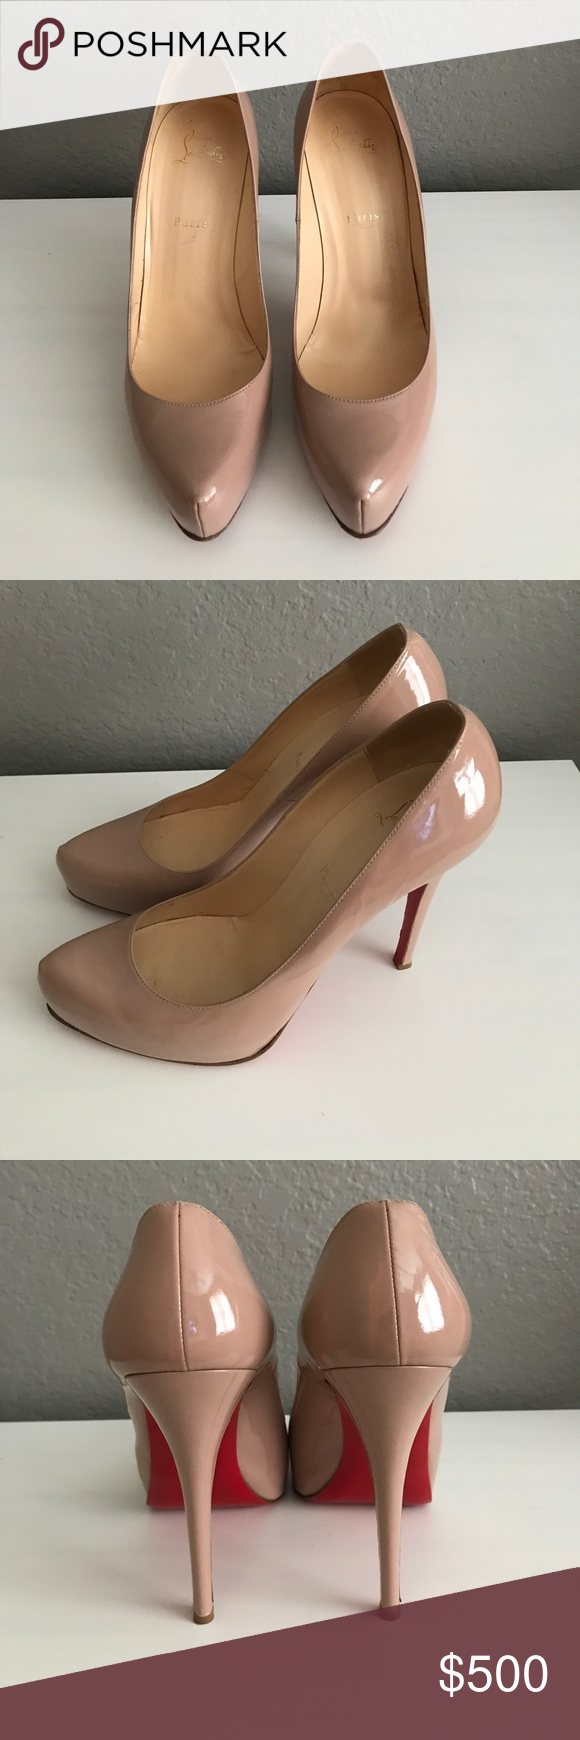 09f349aac20 Christian Louboutin nude patent leather heels Size 41 1/2 (I wear ...